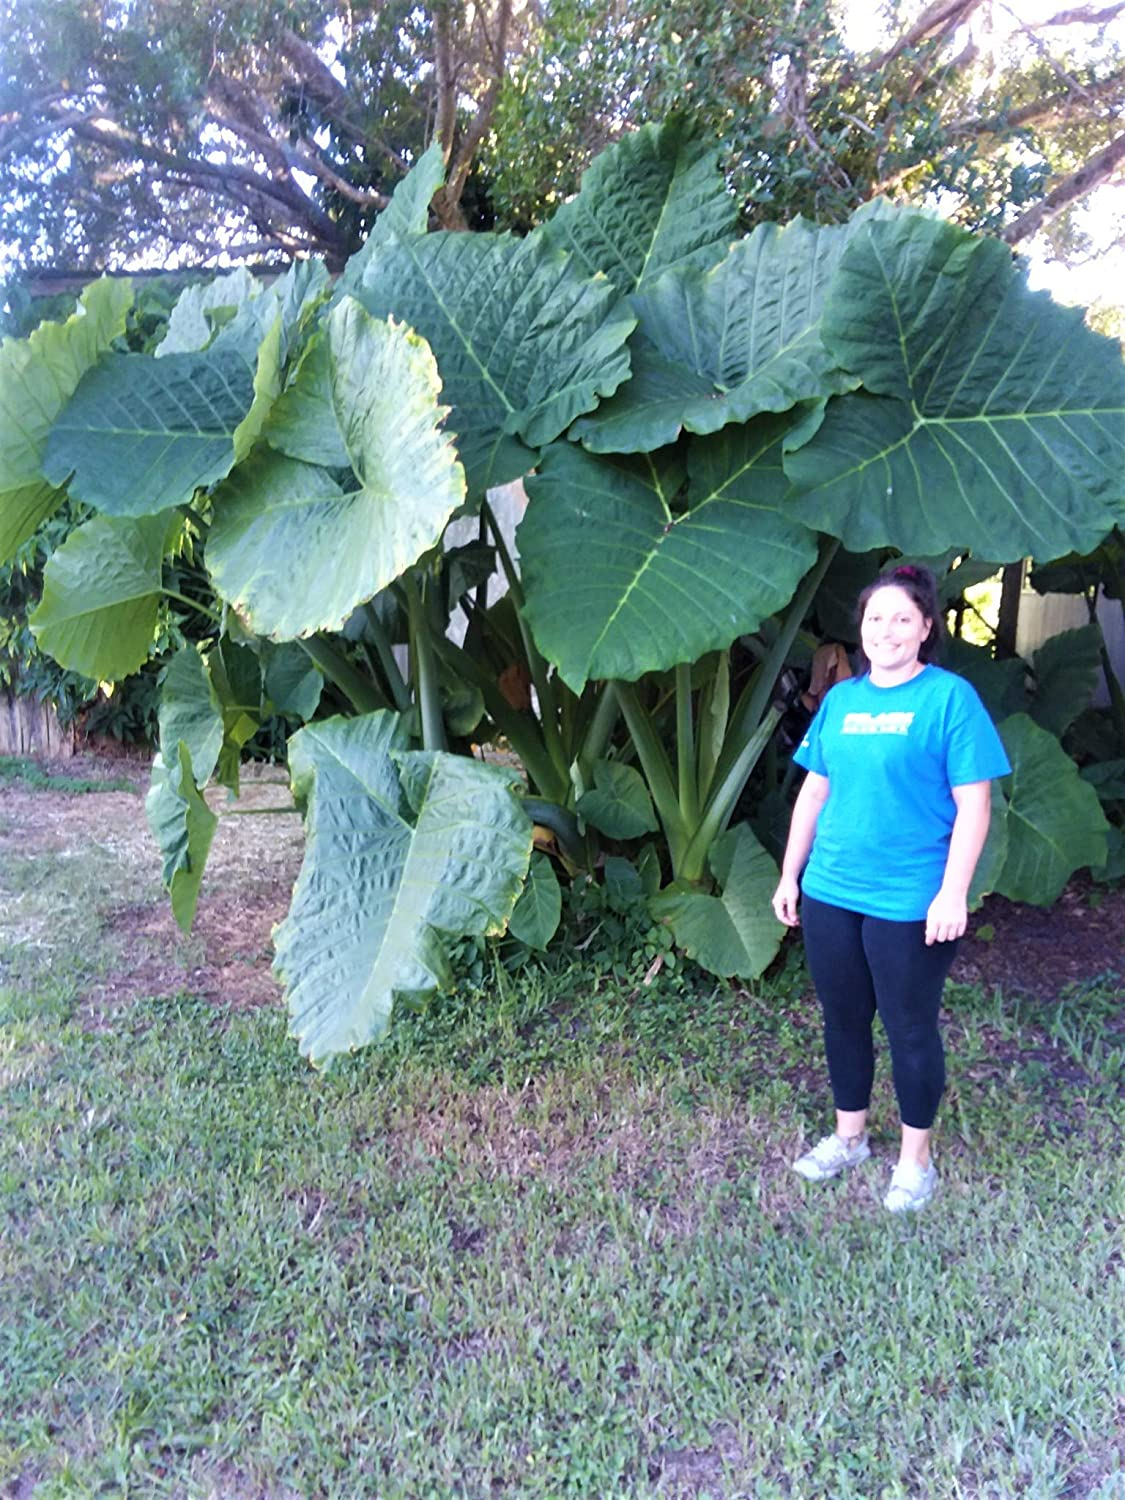 Two Strong and Healthy Emeritus Gardens Elephant Ear, Alocasia Macrorrhiza, Plants with Emeritus Gardens Slow Release Plant Food.